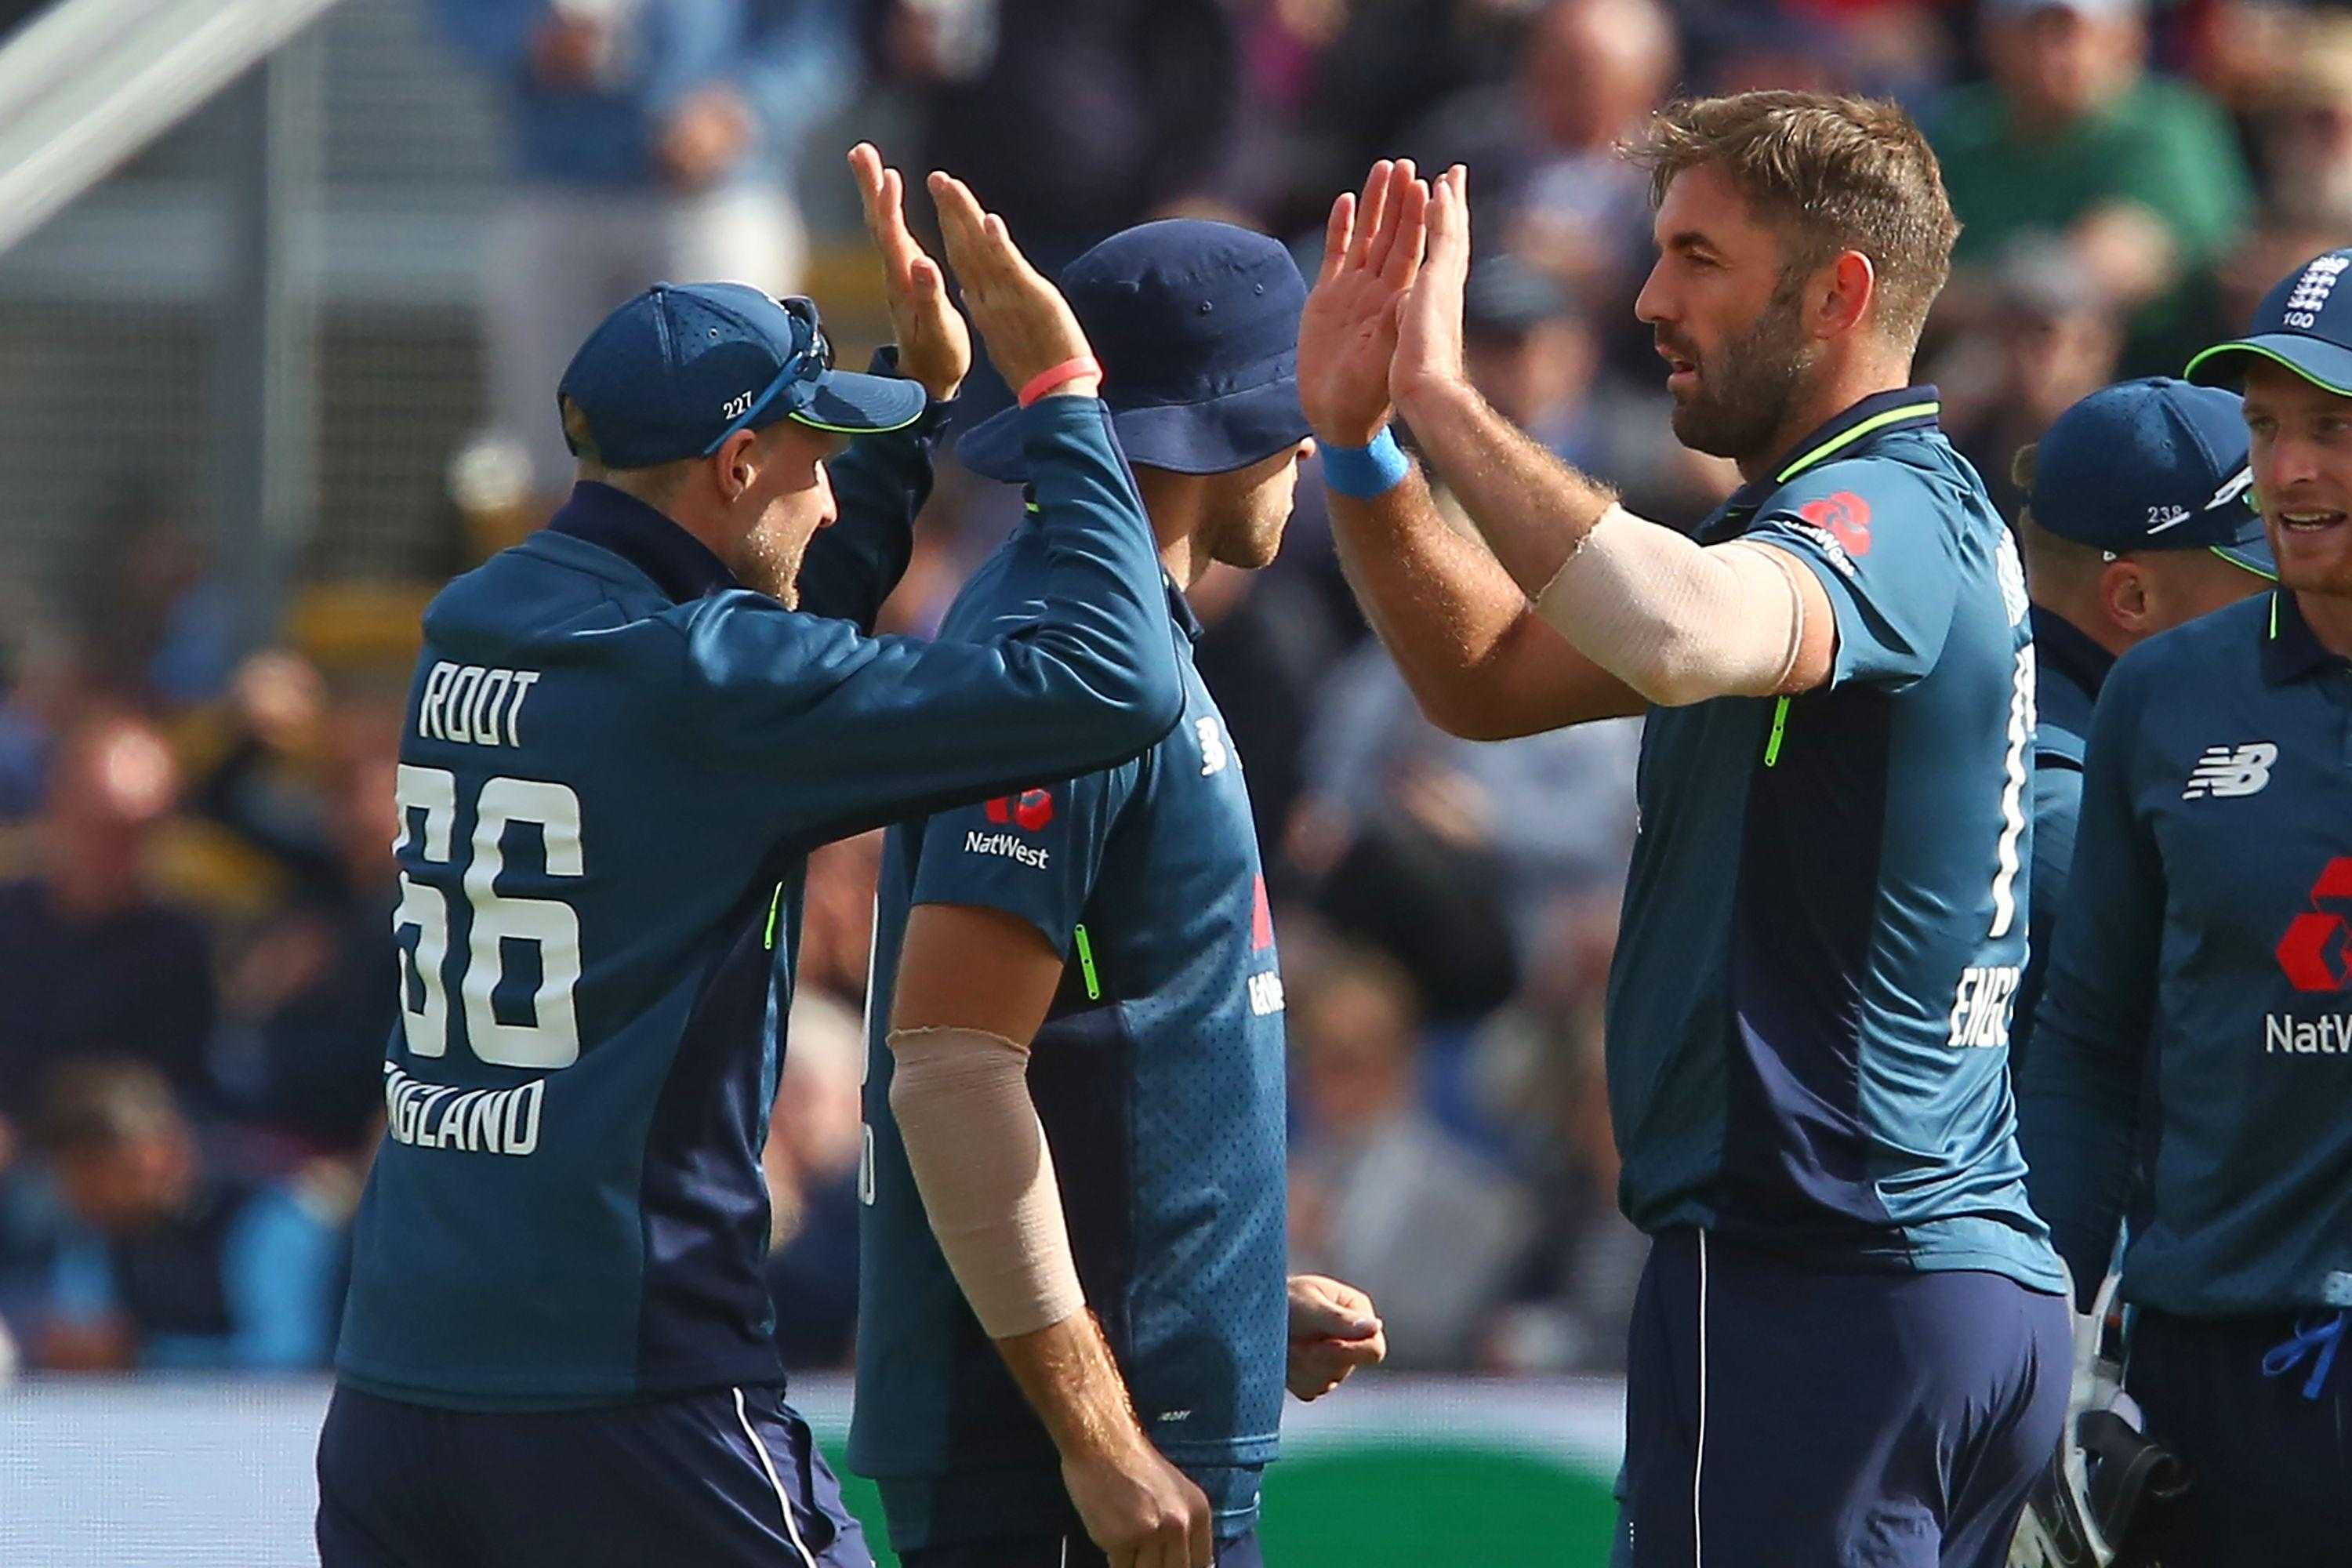 England won by 38 runs in the second ODI in Cardiff